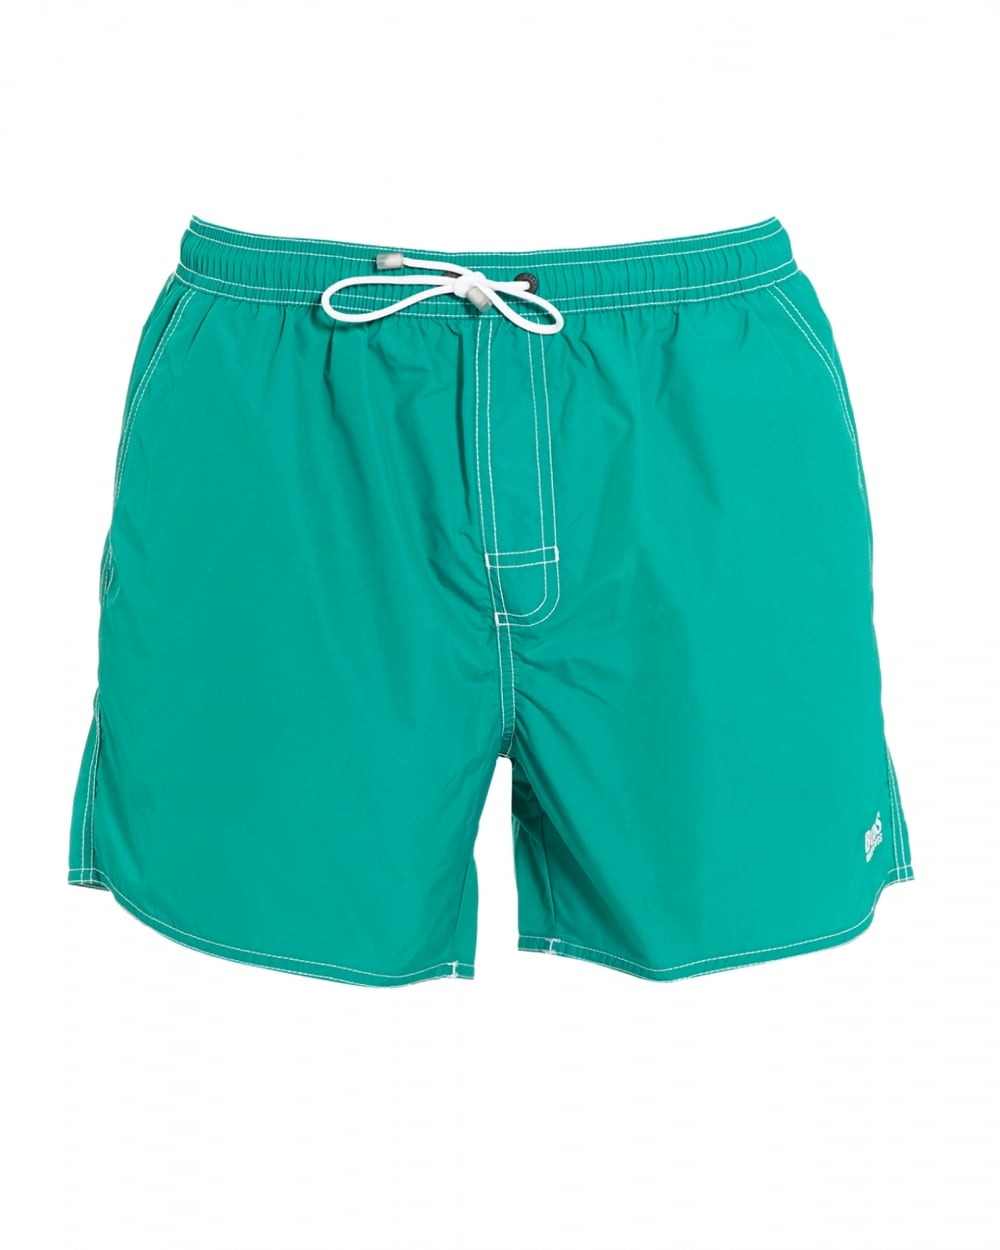 3c0c9a82010c3 Hugo Boss Body Mens Lobster Short Aqua Blue Swim Shorts